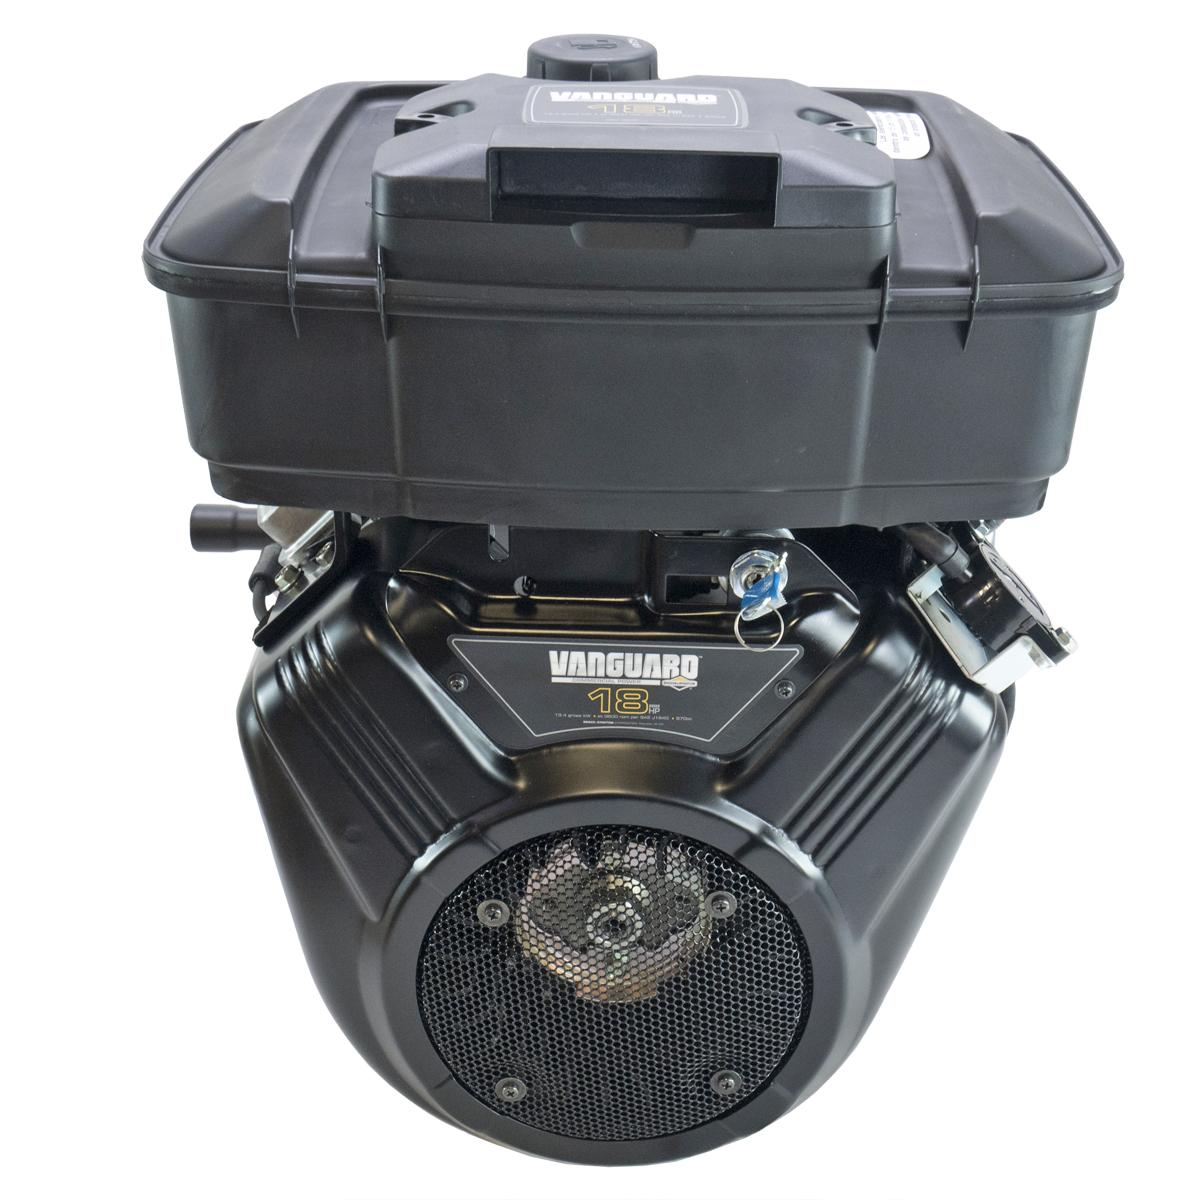 """18hp Horizontal Keyed 1""""x2-29/32"""" Shaft, Electric Start with Switch, Fuel Tank, Oil Filter, Manifold Briggs   Stratton Engine"""